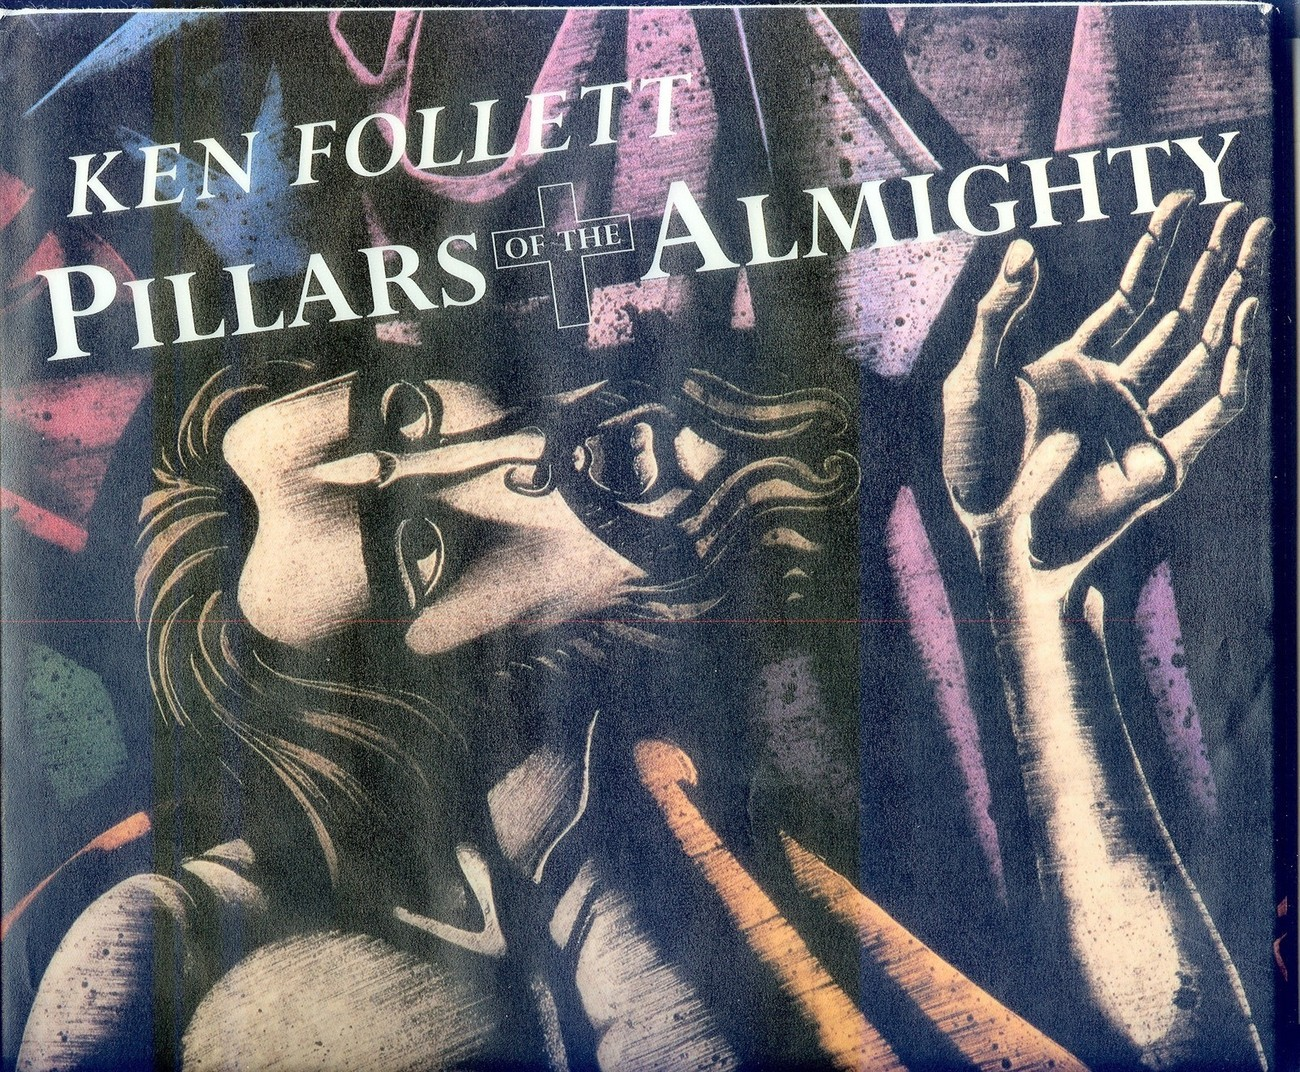 Pillars Of The Almighty:A Celebration of Cathedrals;Ken Follett;f-stop Fitzgeral